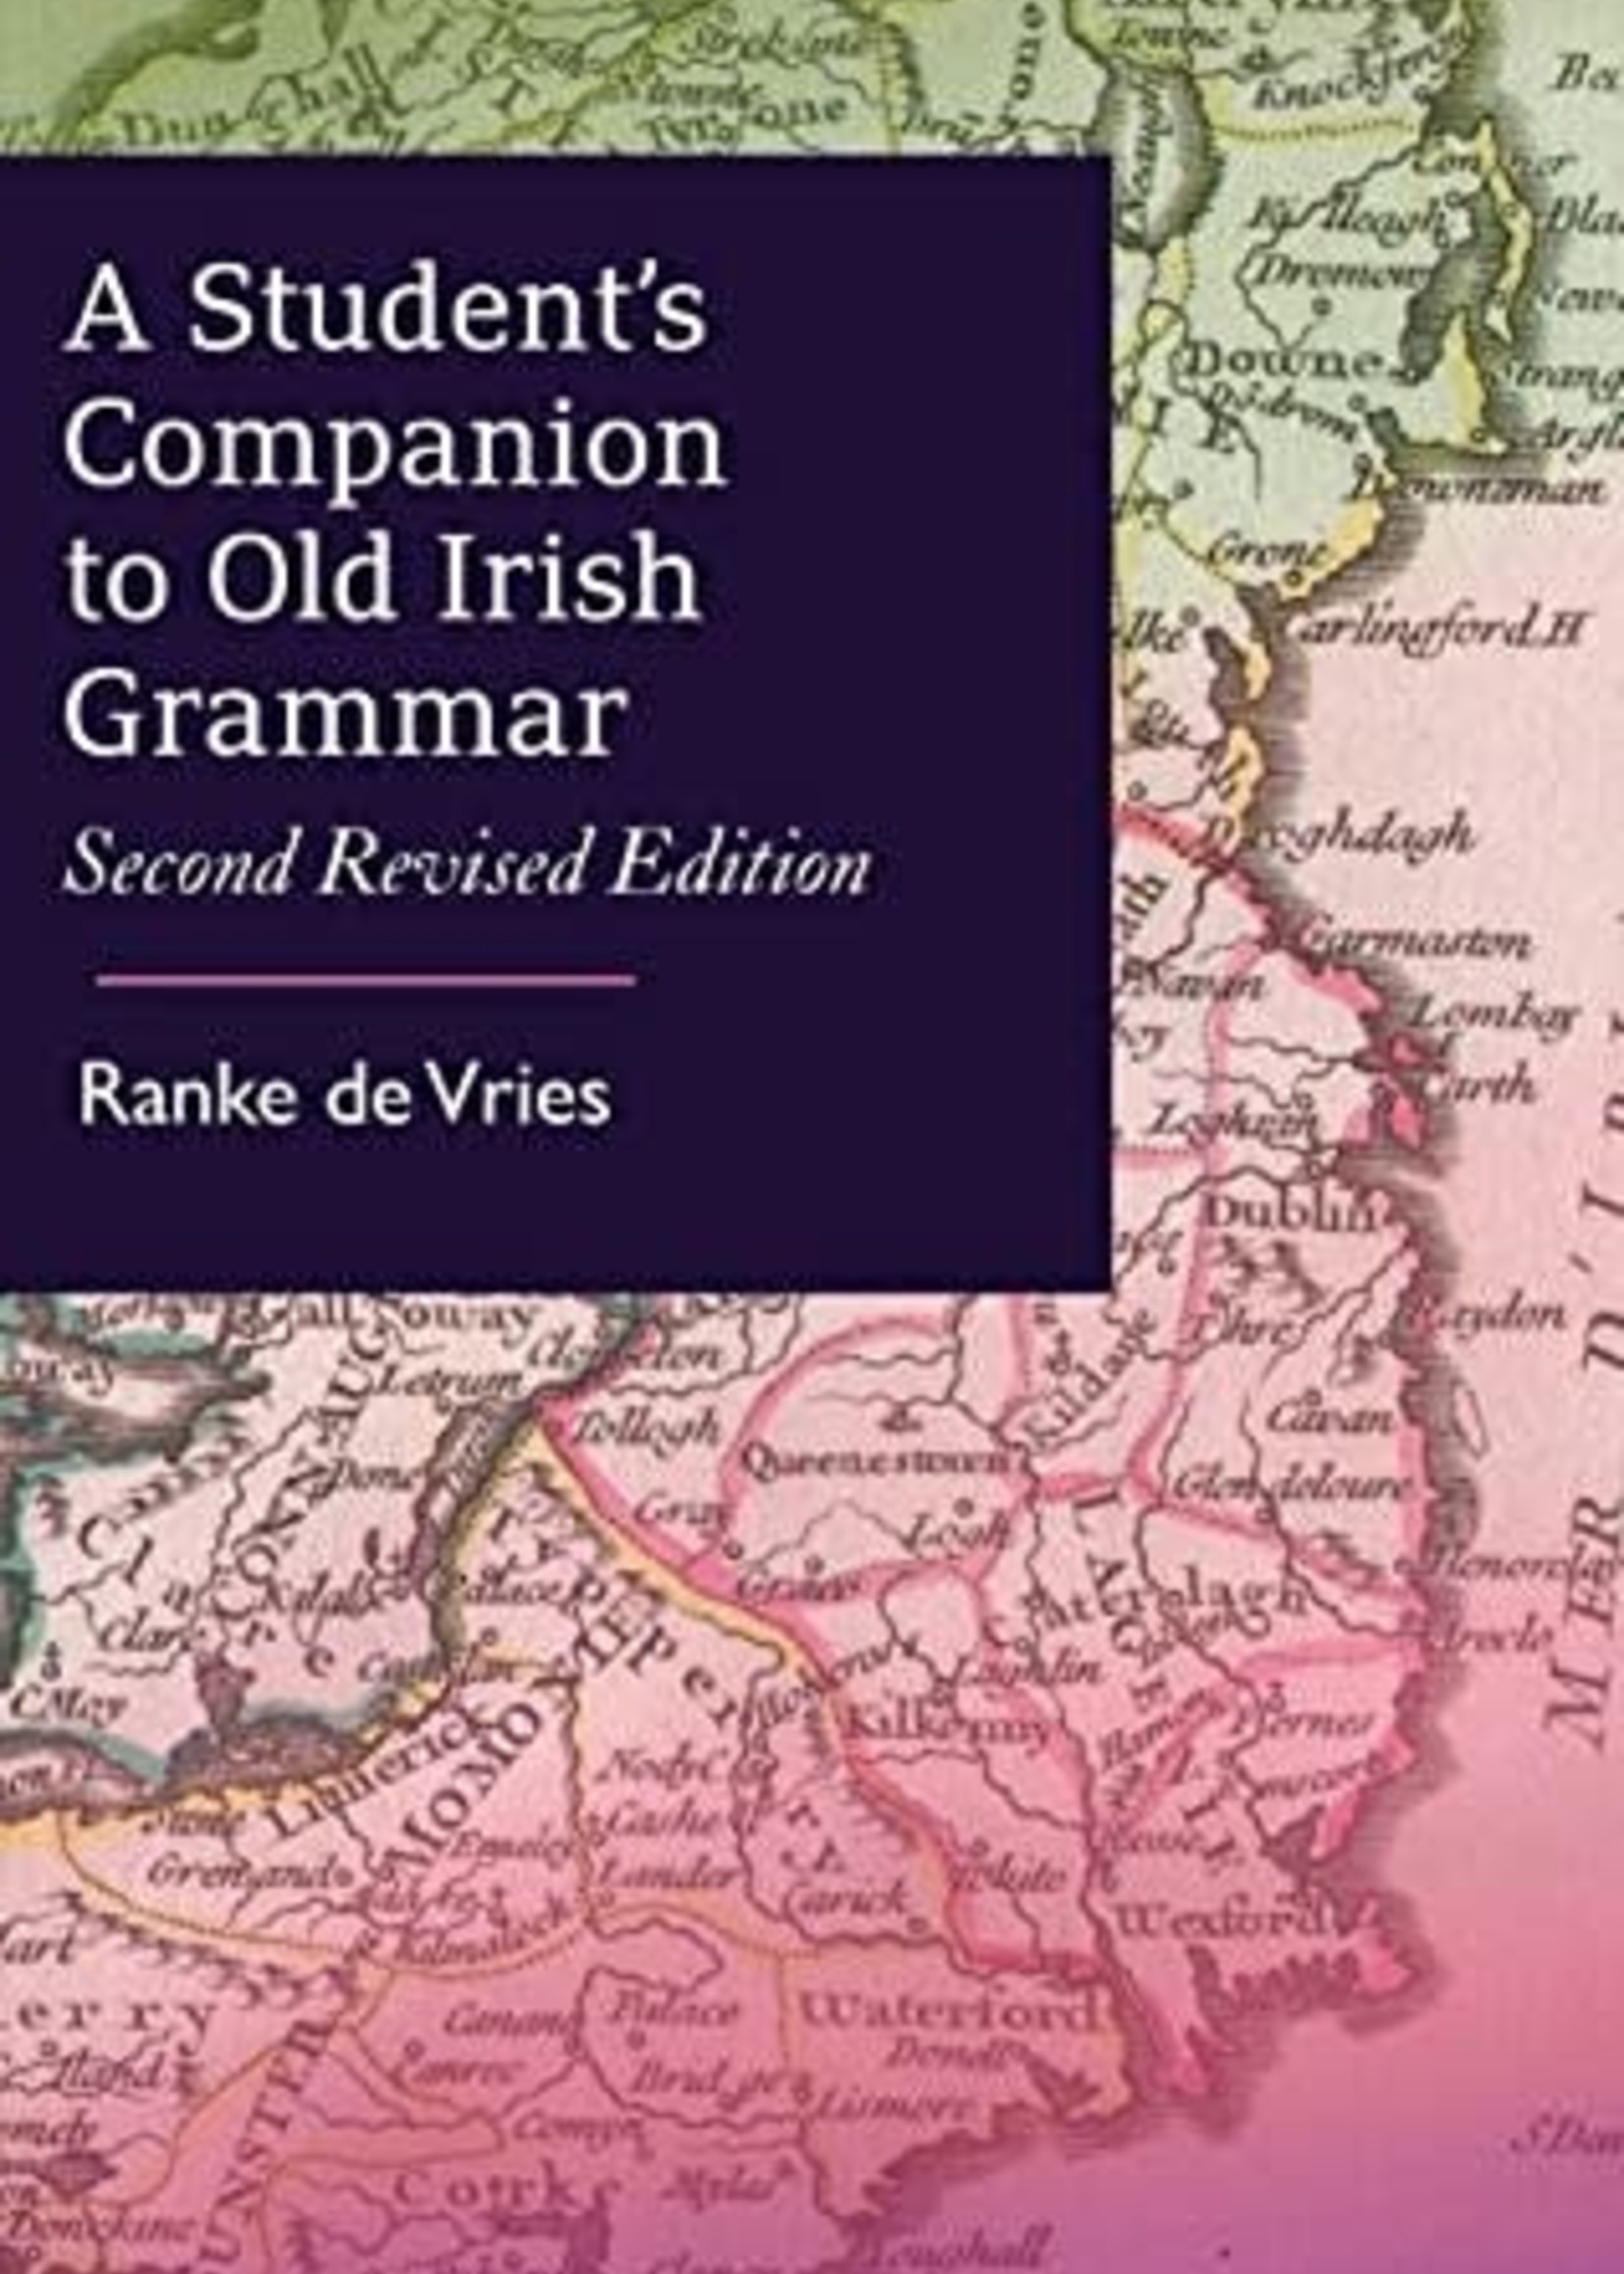 A Student's Companion to Old Irish Grammar: Second Revised Edition by Ranke de Vries